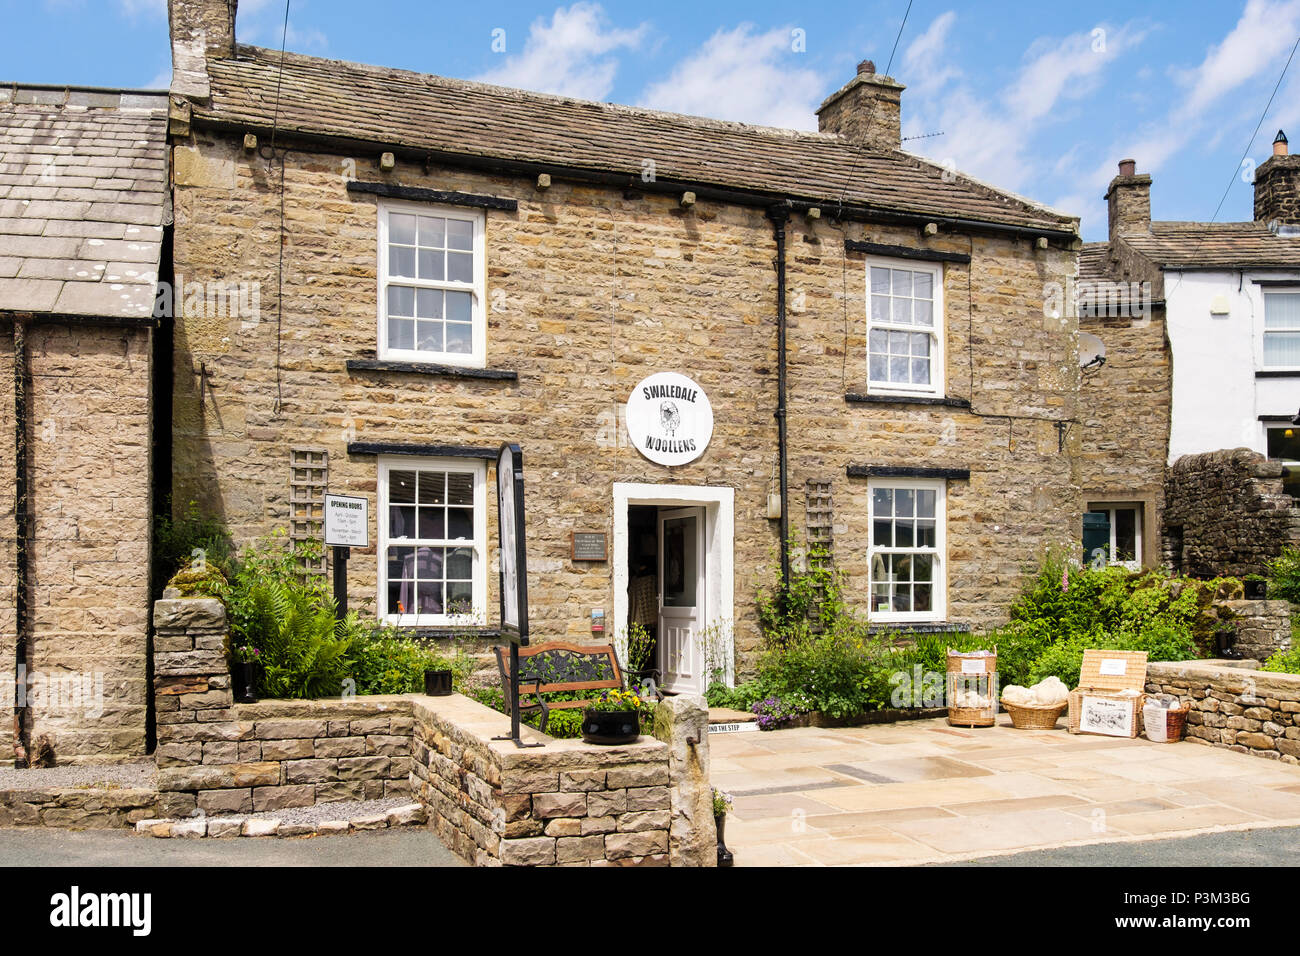 Swaledale Woollens shop in old traditional stone cottage. Muker, Swaledale, Yorkshire Dales National Park, North Yorkshire, England, UK, Britain - Stock Image